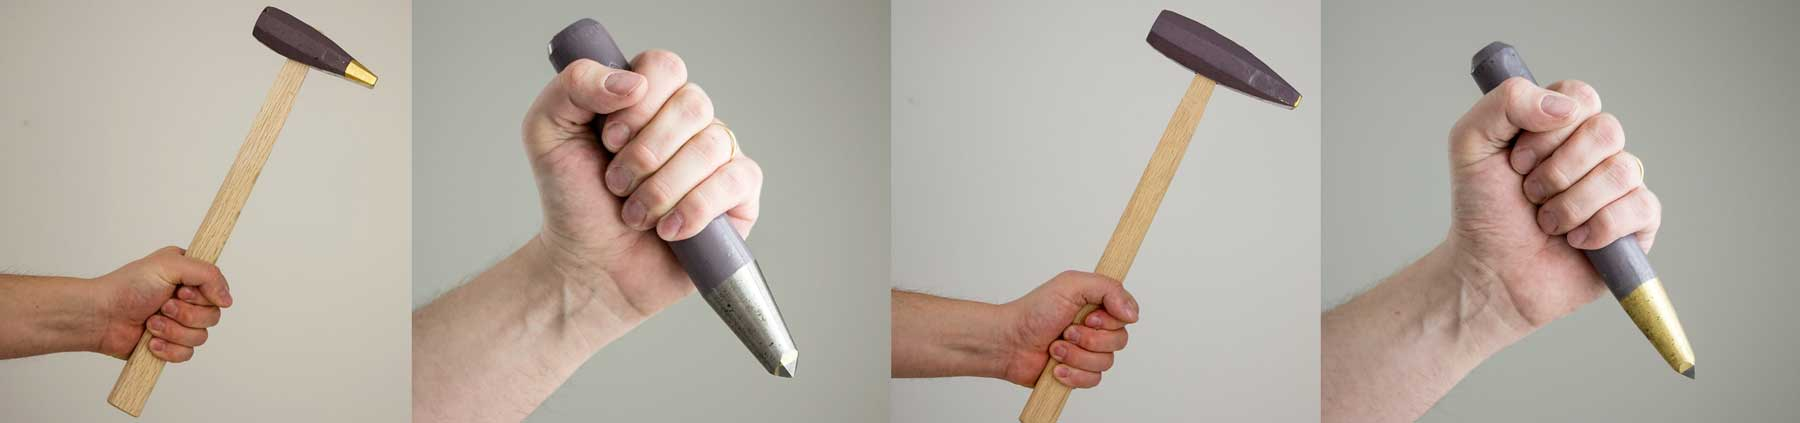 Japanese Stone Working Tools Now Available – The Stone Trust